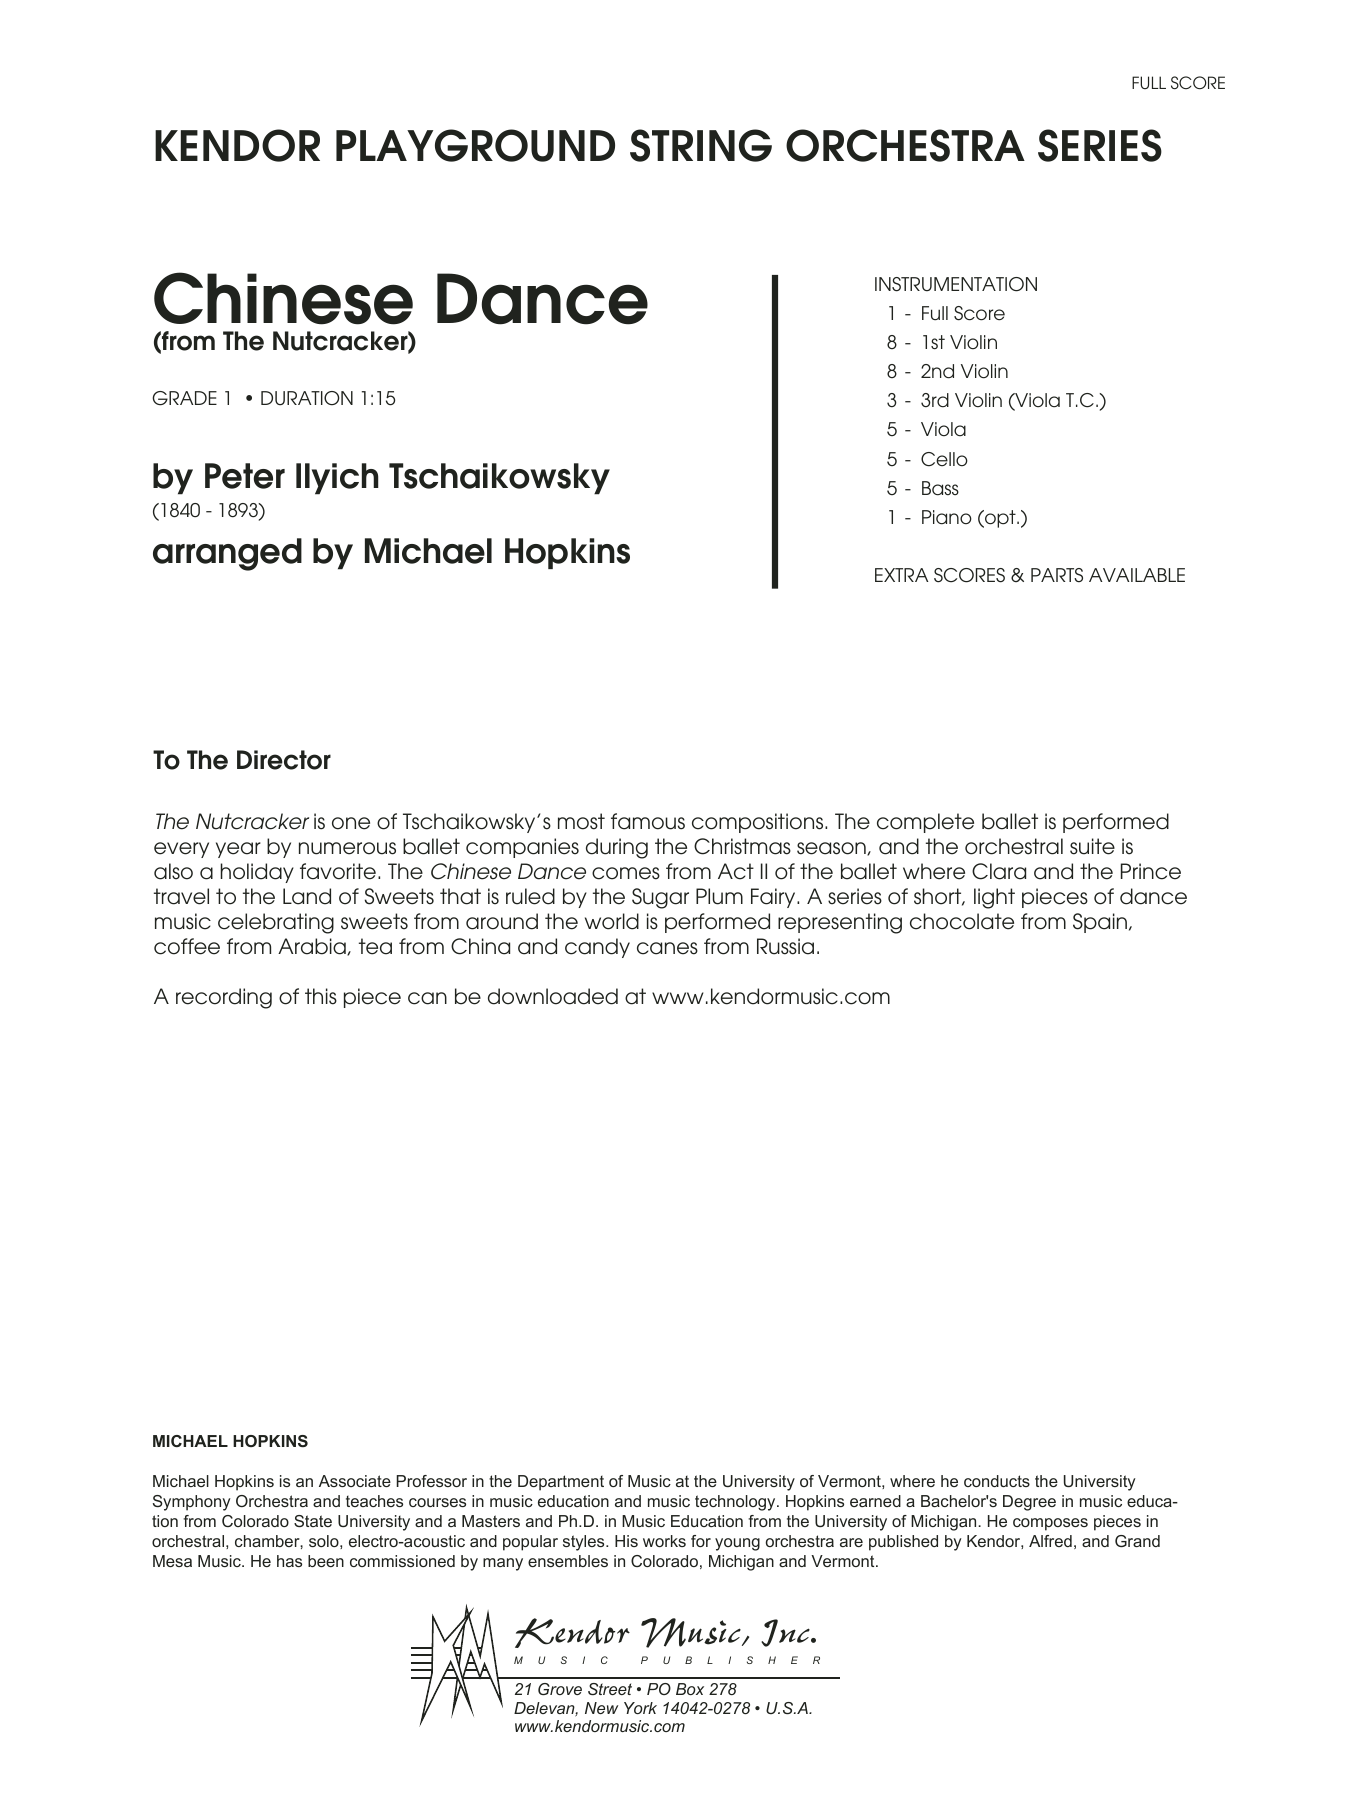 Chinese Dance (from The Nutcracker) - Full Score